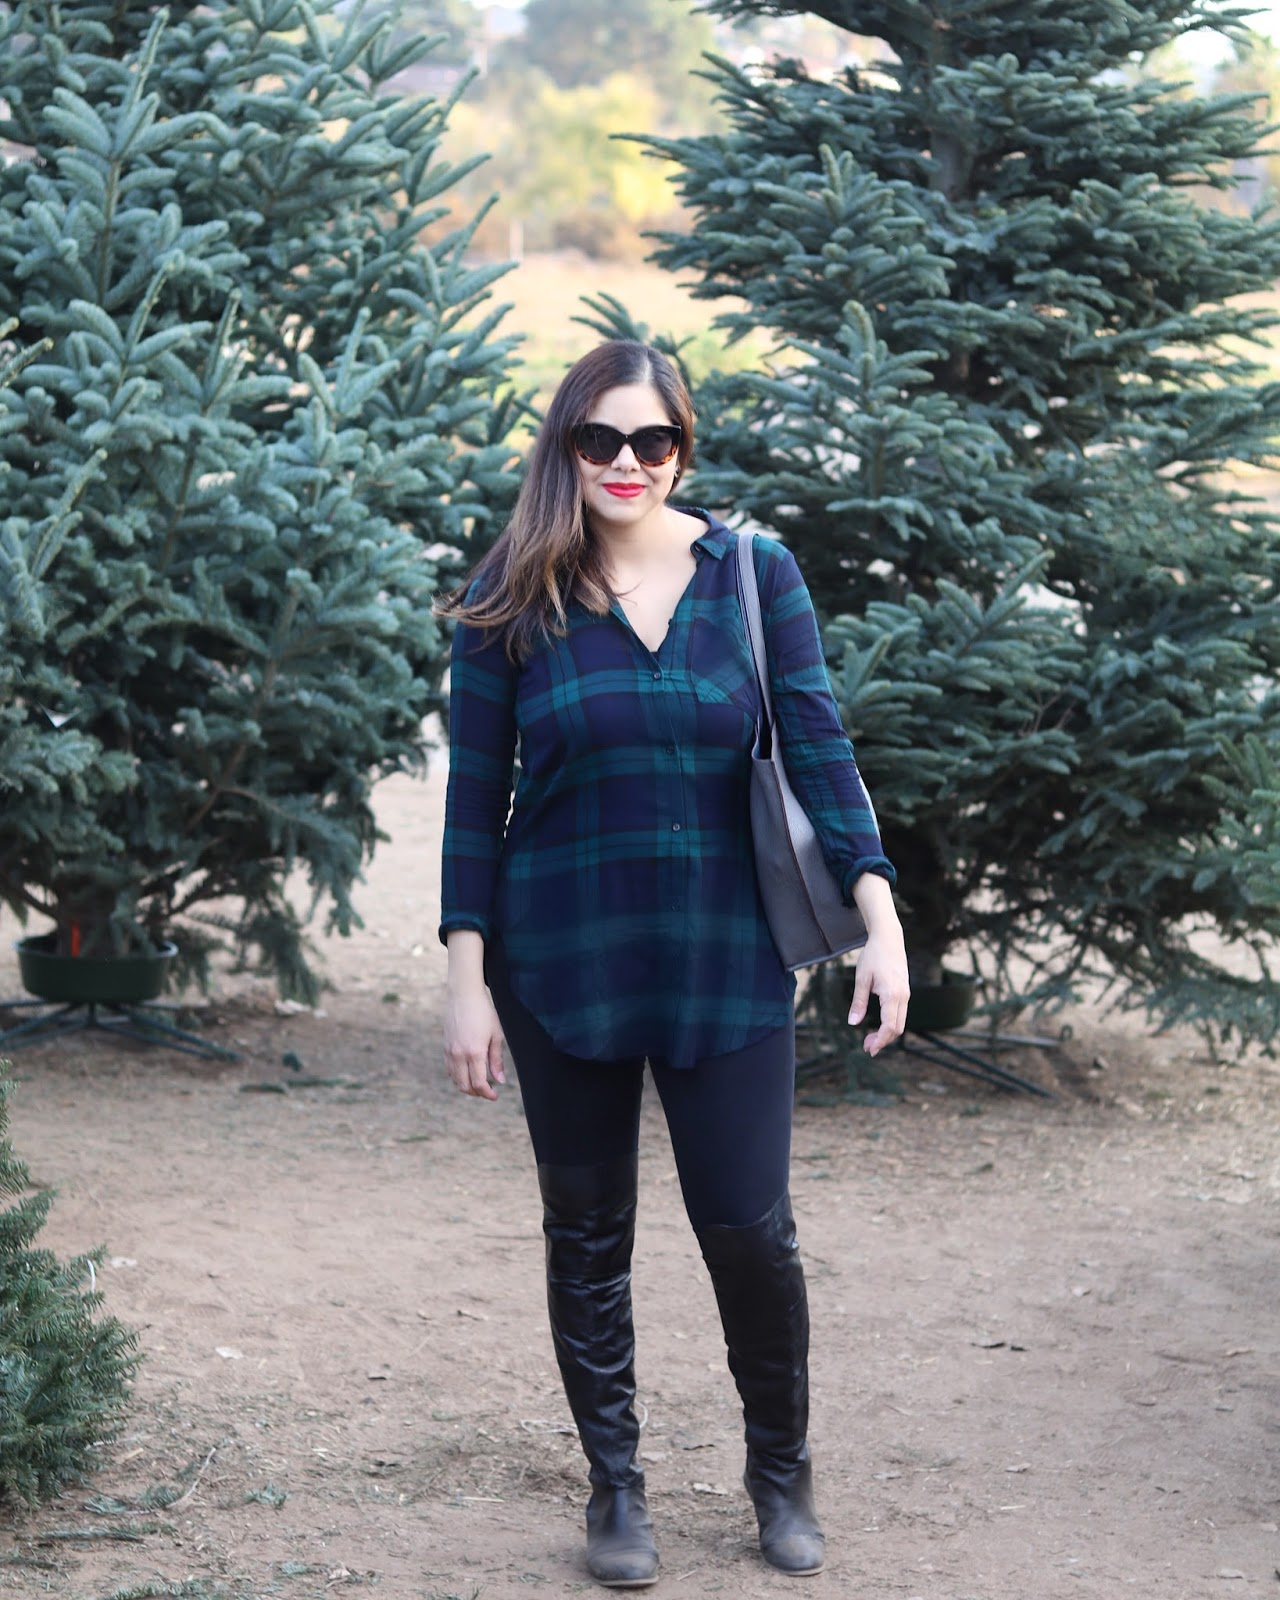 Christmas Tree picking outfit, women's Christmas Tree picking outfit, San diego fashion blogger, san diego style blogger